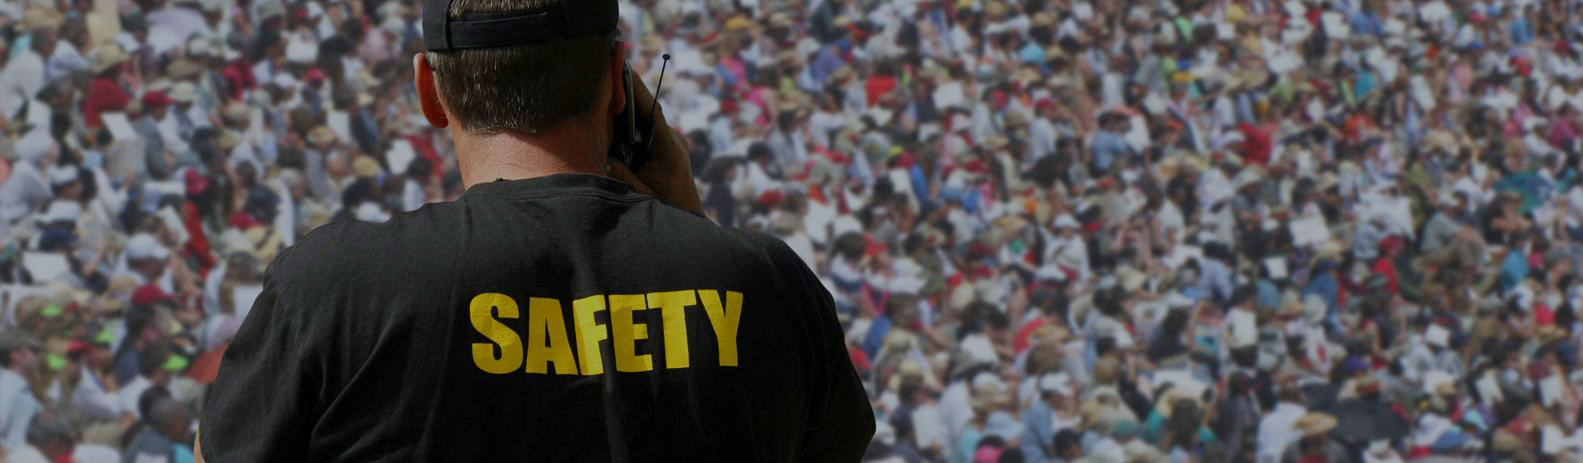 Event Security Guards | Party or Special Event Security Services